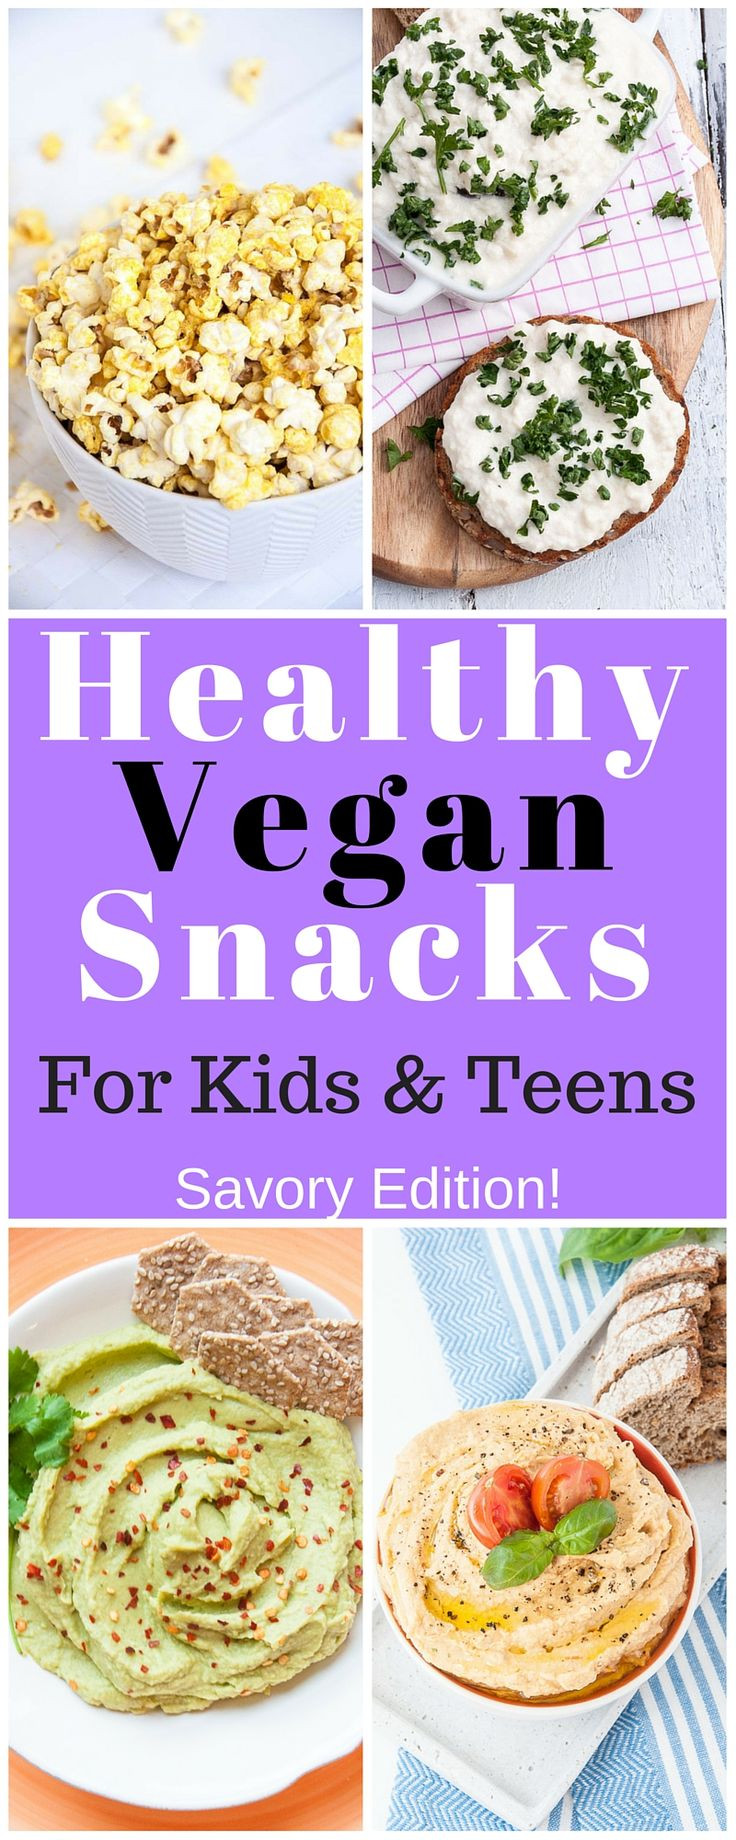 Healthy Vegetarian Recipes For Kids  Best 25 Healthy t for kids ideas on Pinterest